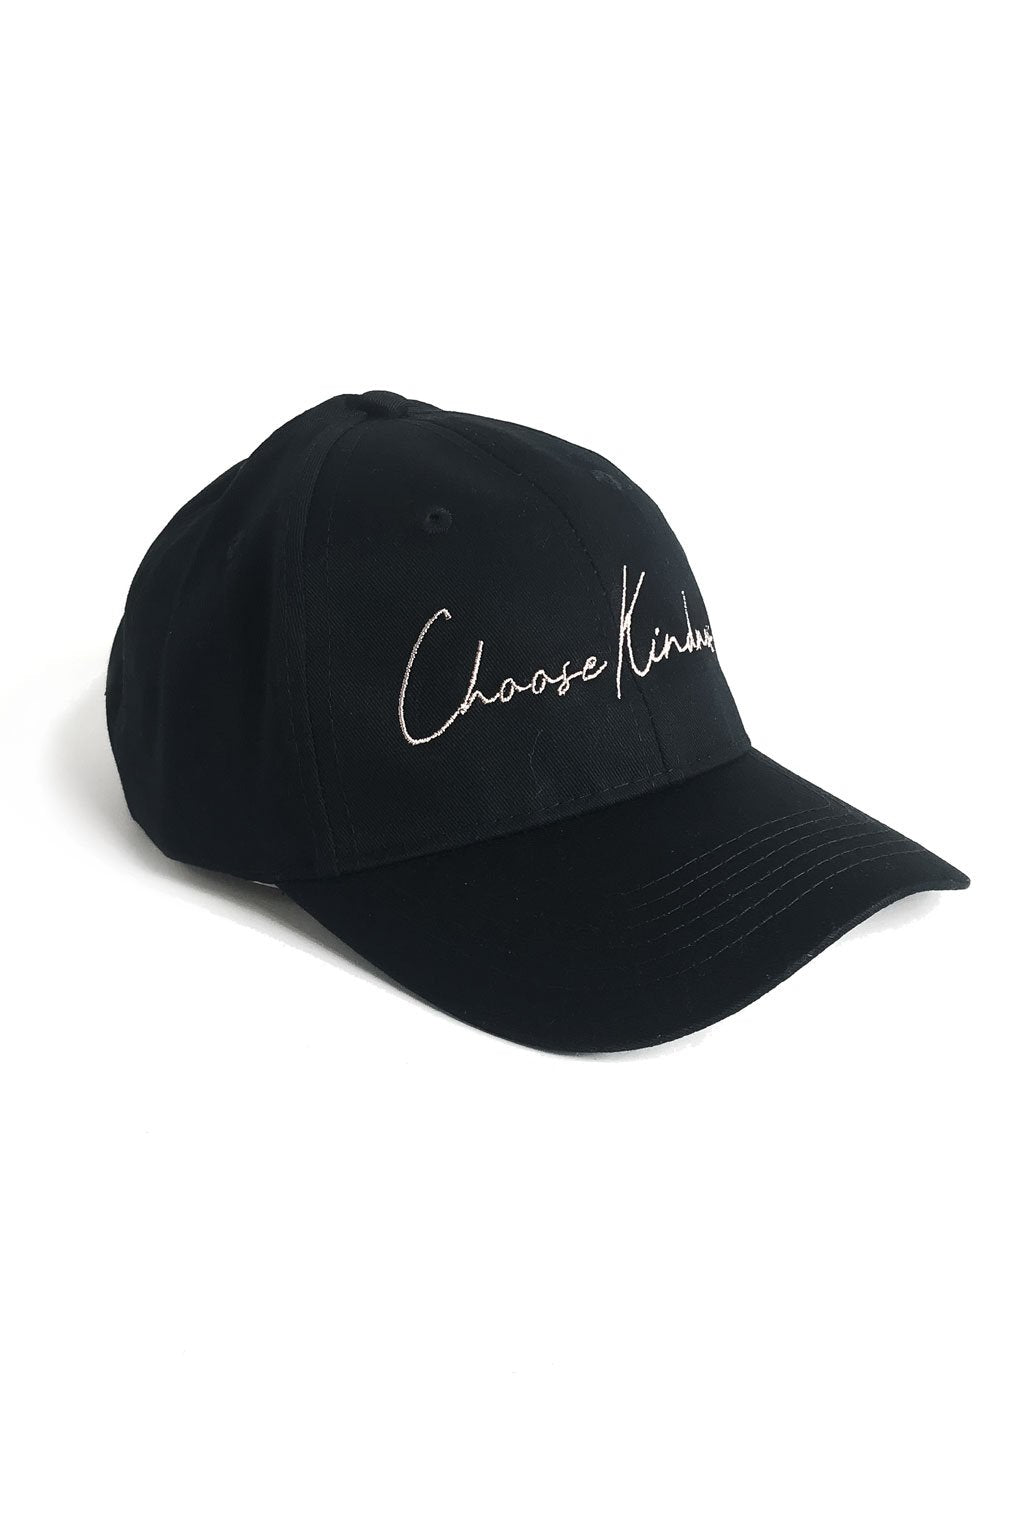 Black Logo Cap - Port 213.com